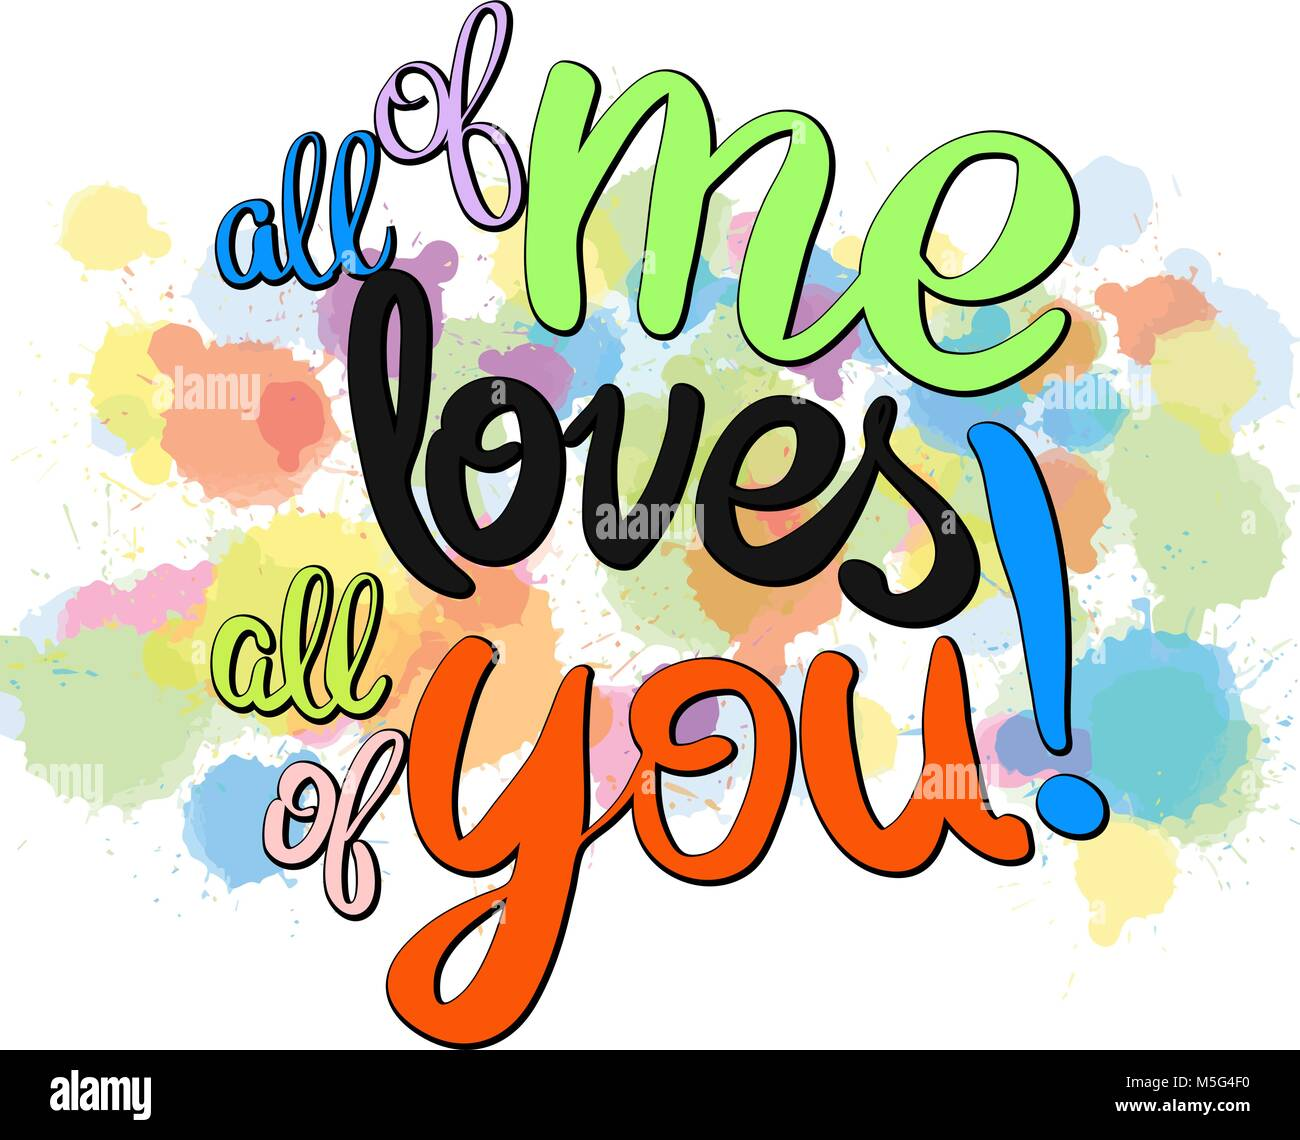 All Of Me Loves All Of You Written Phrase Vector Artwork Concept